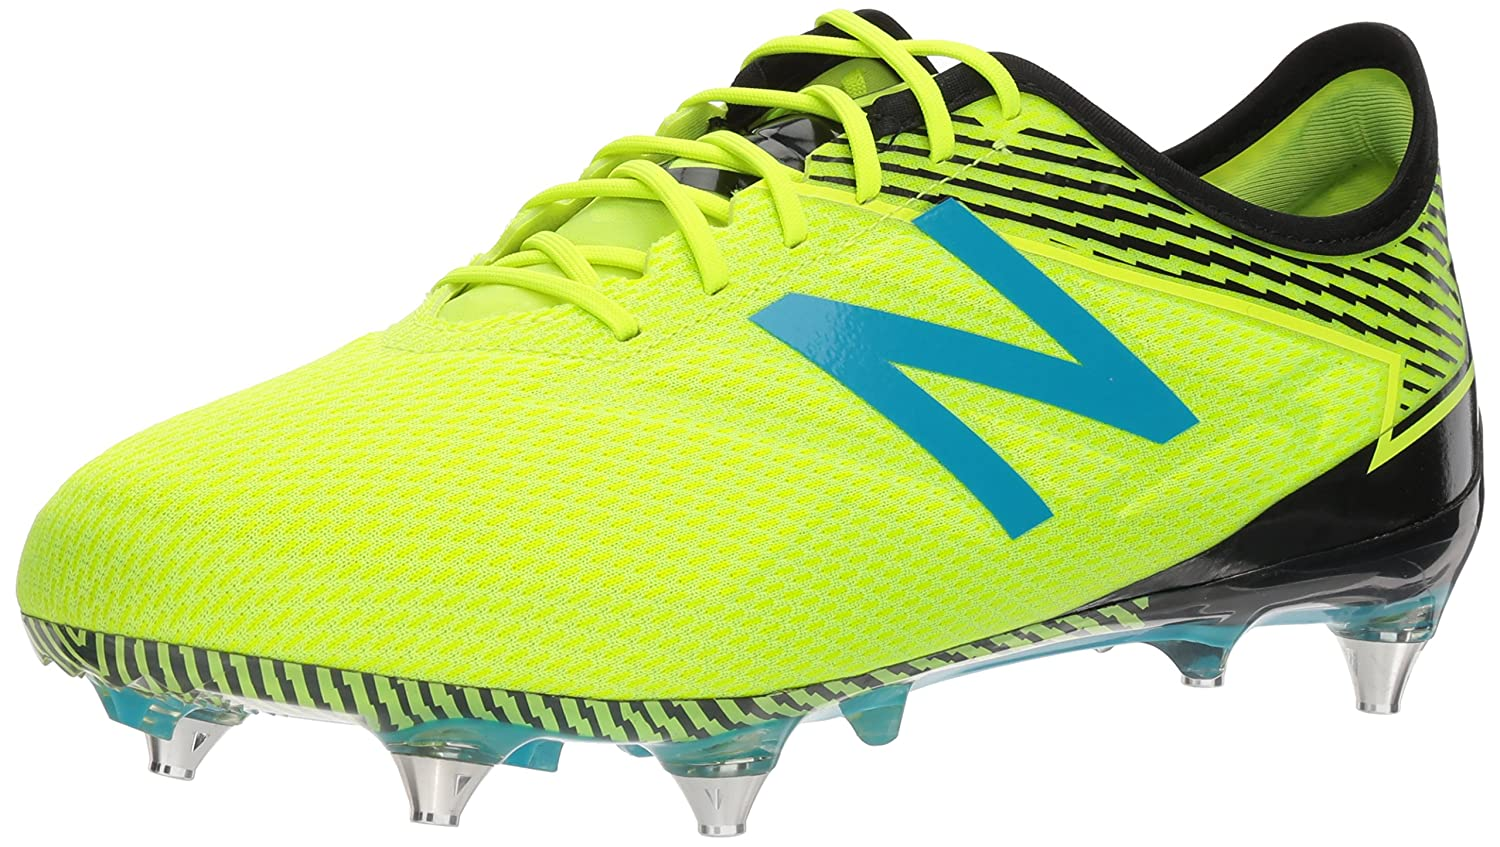 014cbce68 Amazon.com | New Balance Men's Furon 3.0 Pro SG Soccer Shoe | Soccer